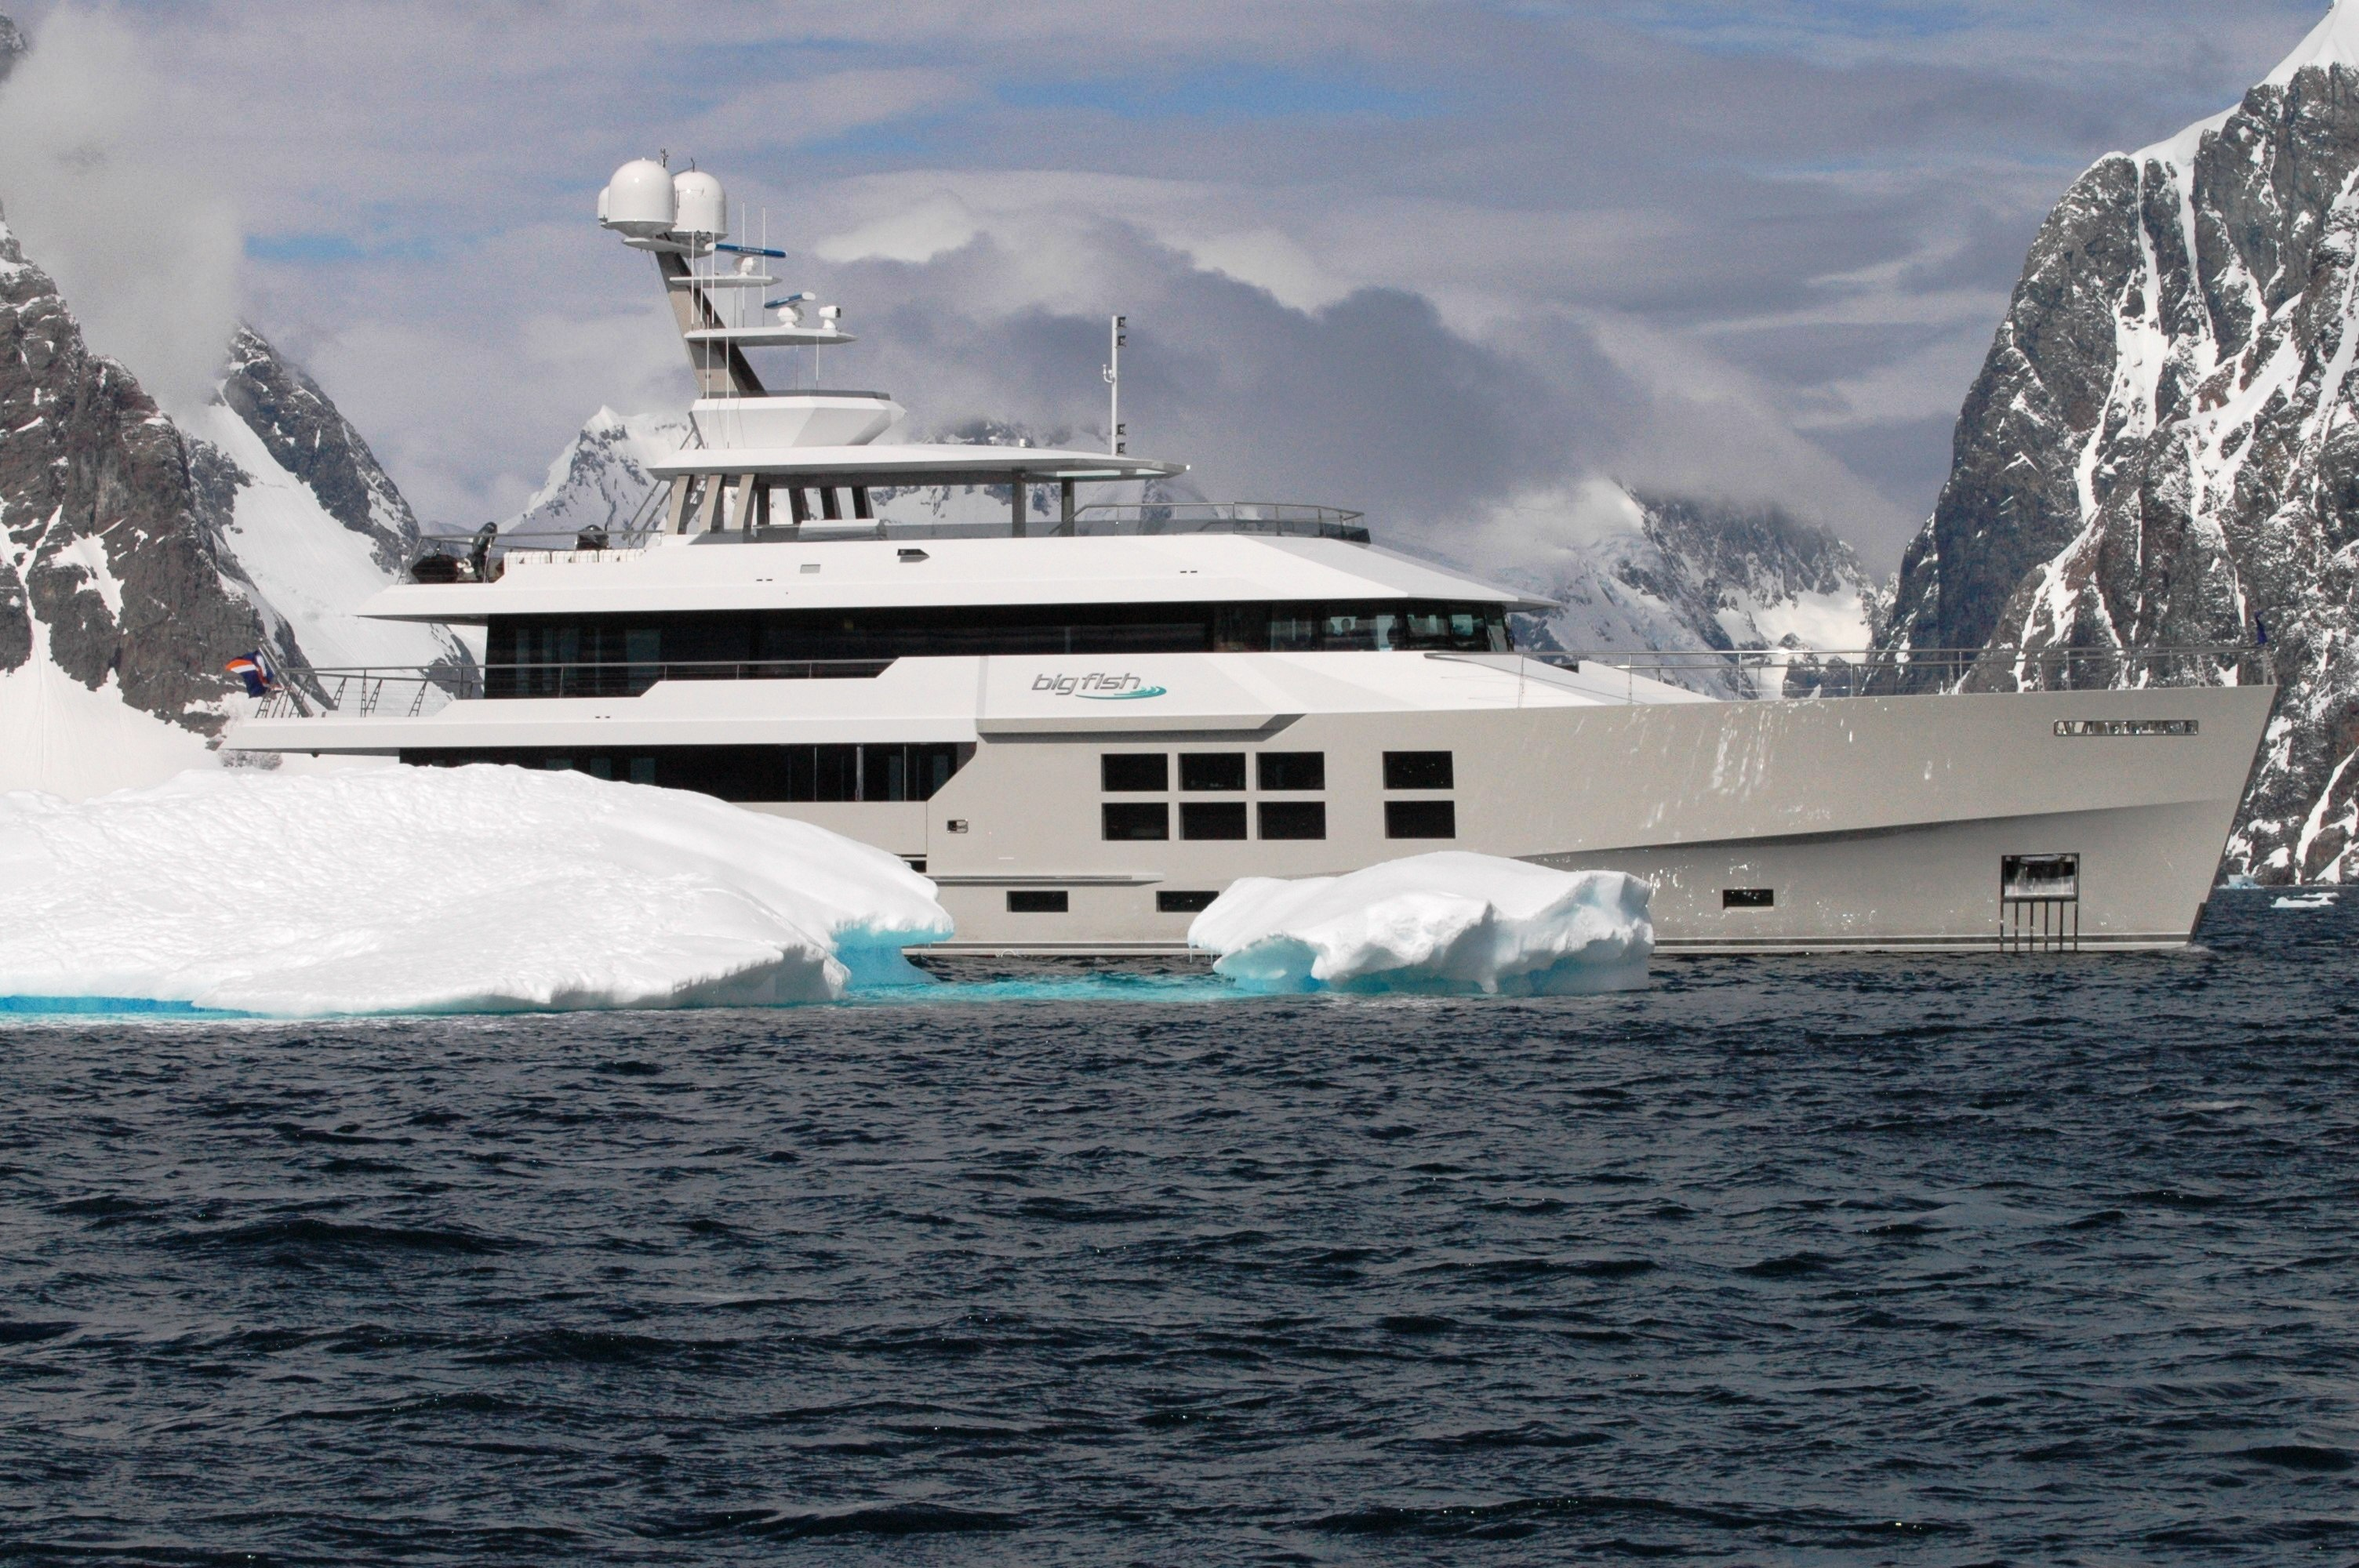 Expedition Motor Yacht Big Fish Yacht Charter